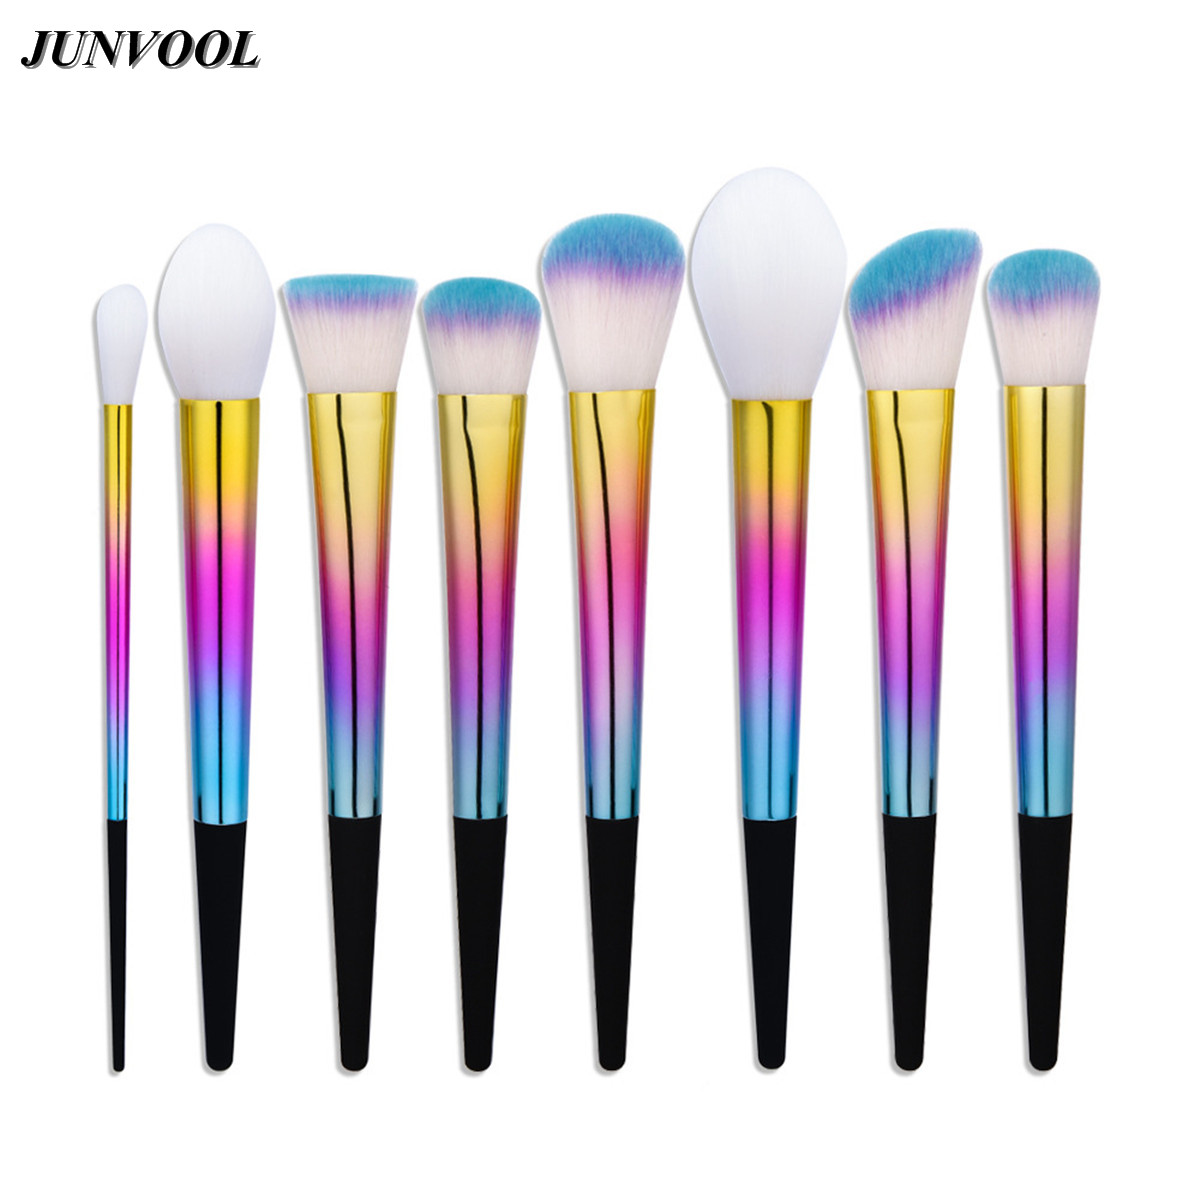 8pcs Make Up Fantasy Foundation Brushes Set Tapered Handle Face Professional Powder Blush Contour Cosmetic Makeup Brush Tools 8pcs rose gold makeup brushes eye shadow powder blush foundation brush 2pc sponge puff make up brushes pincel maquiagem cosmetic